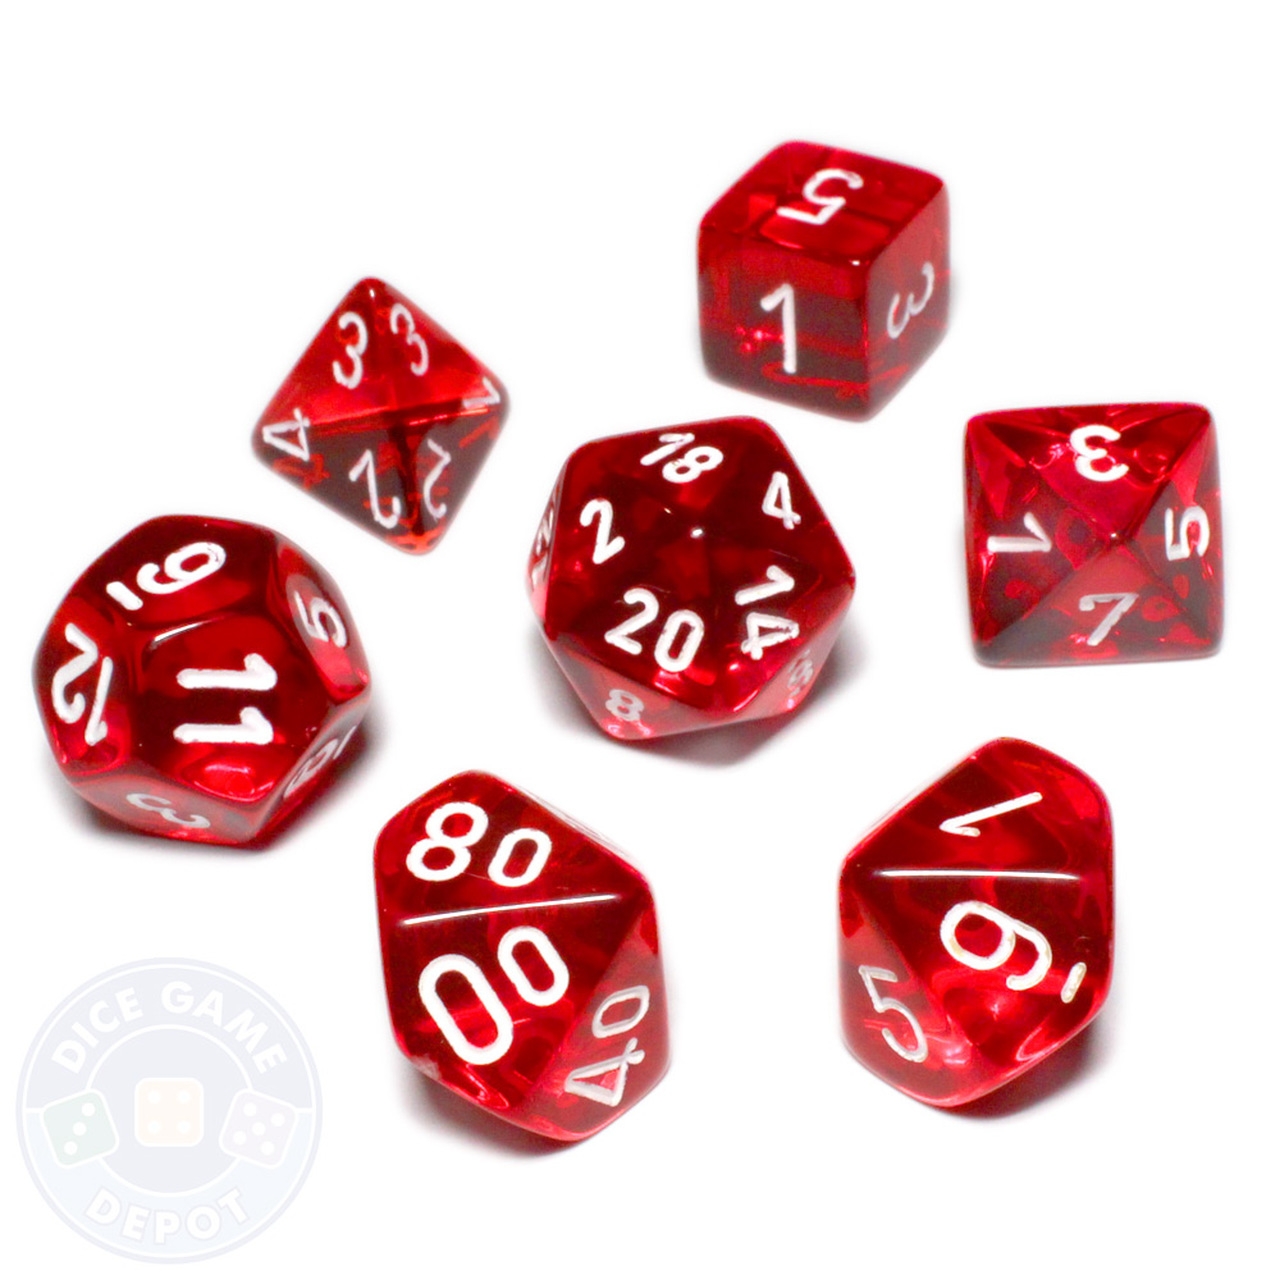 royalty free library Polyhedral set . Transparent dice red